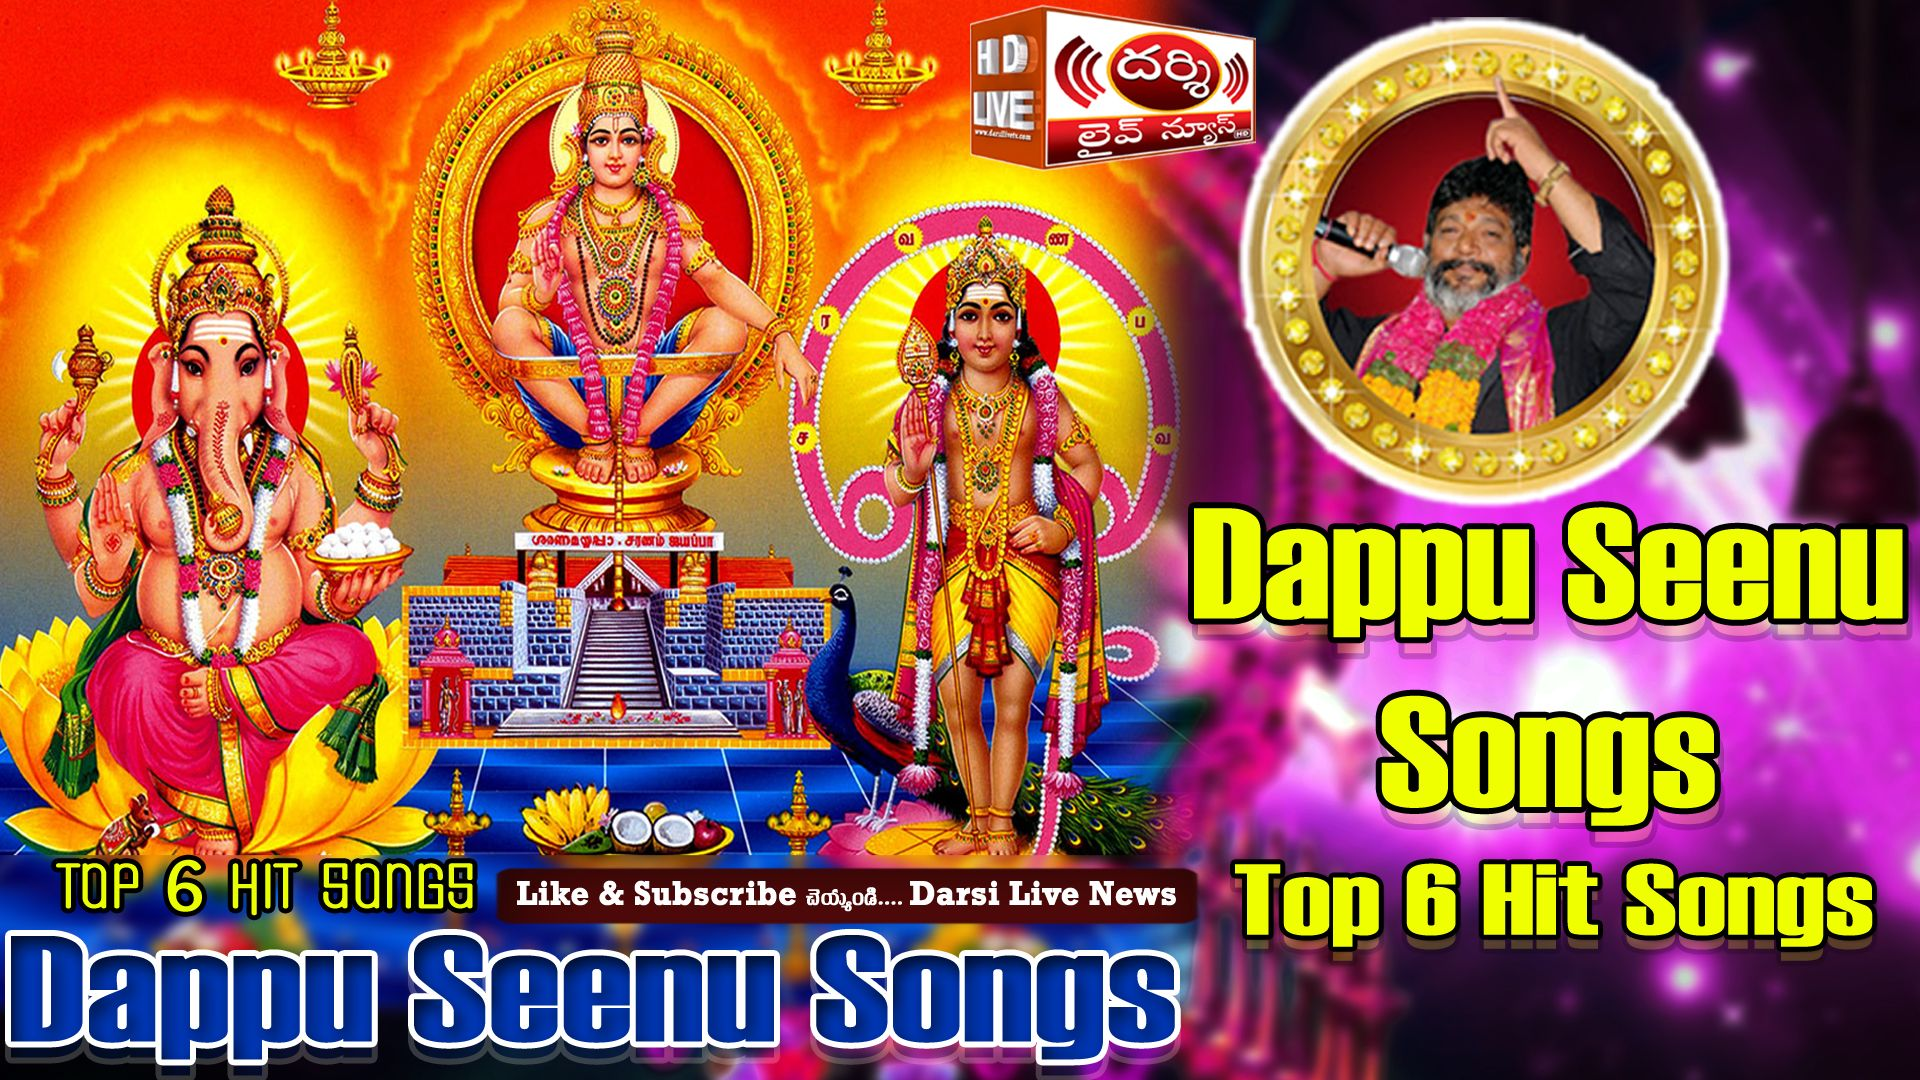 Top 6 Hit Songs || Dappu Srinu Ayyappa Songs || Dappu